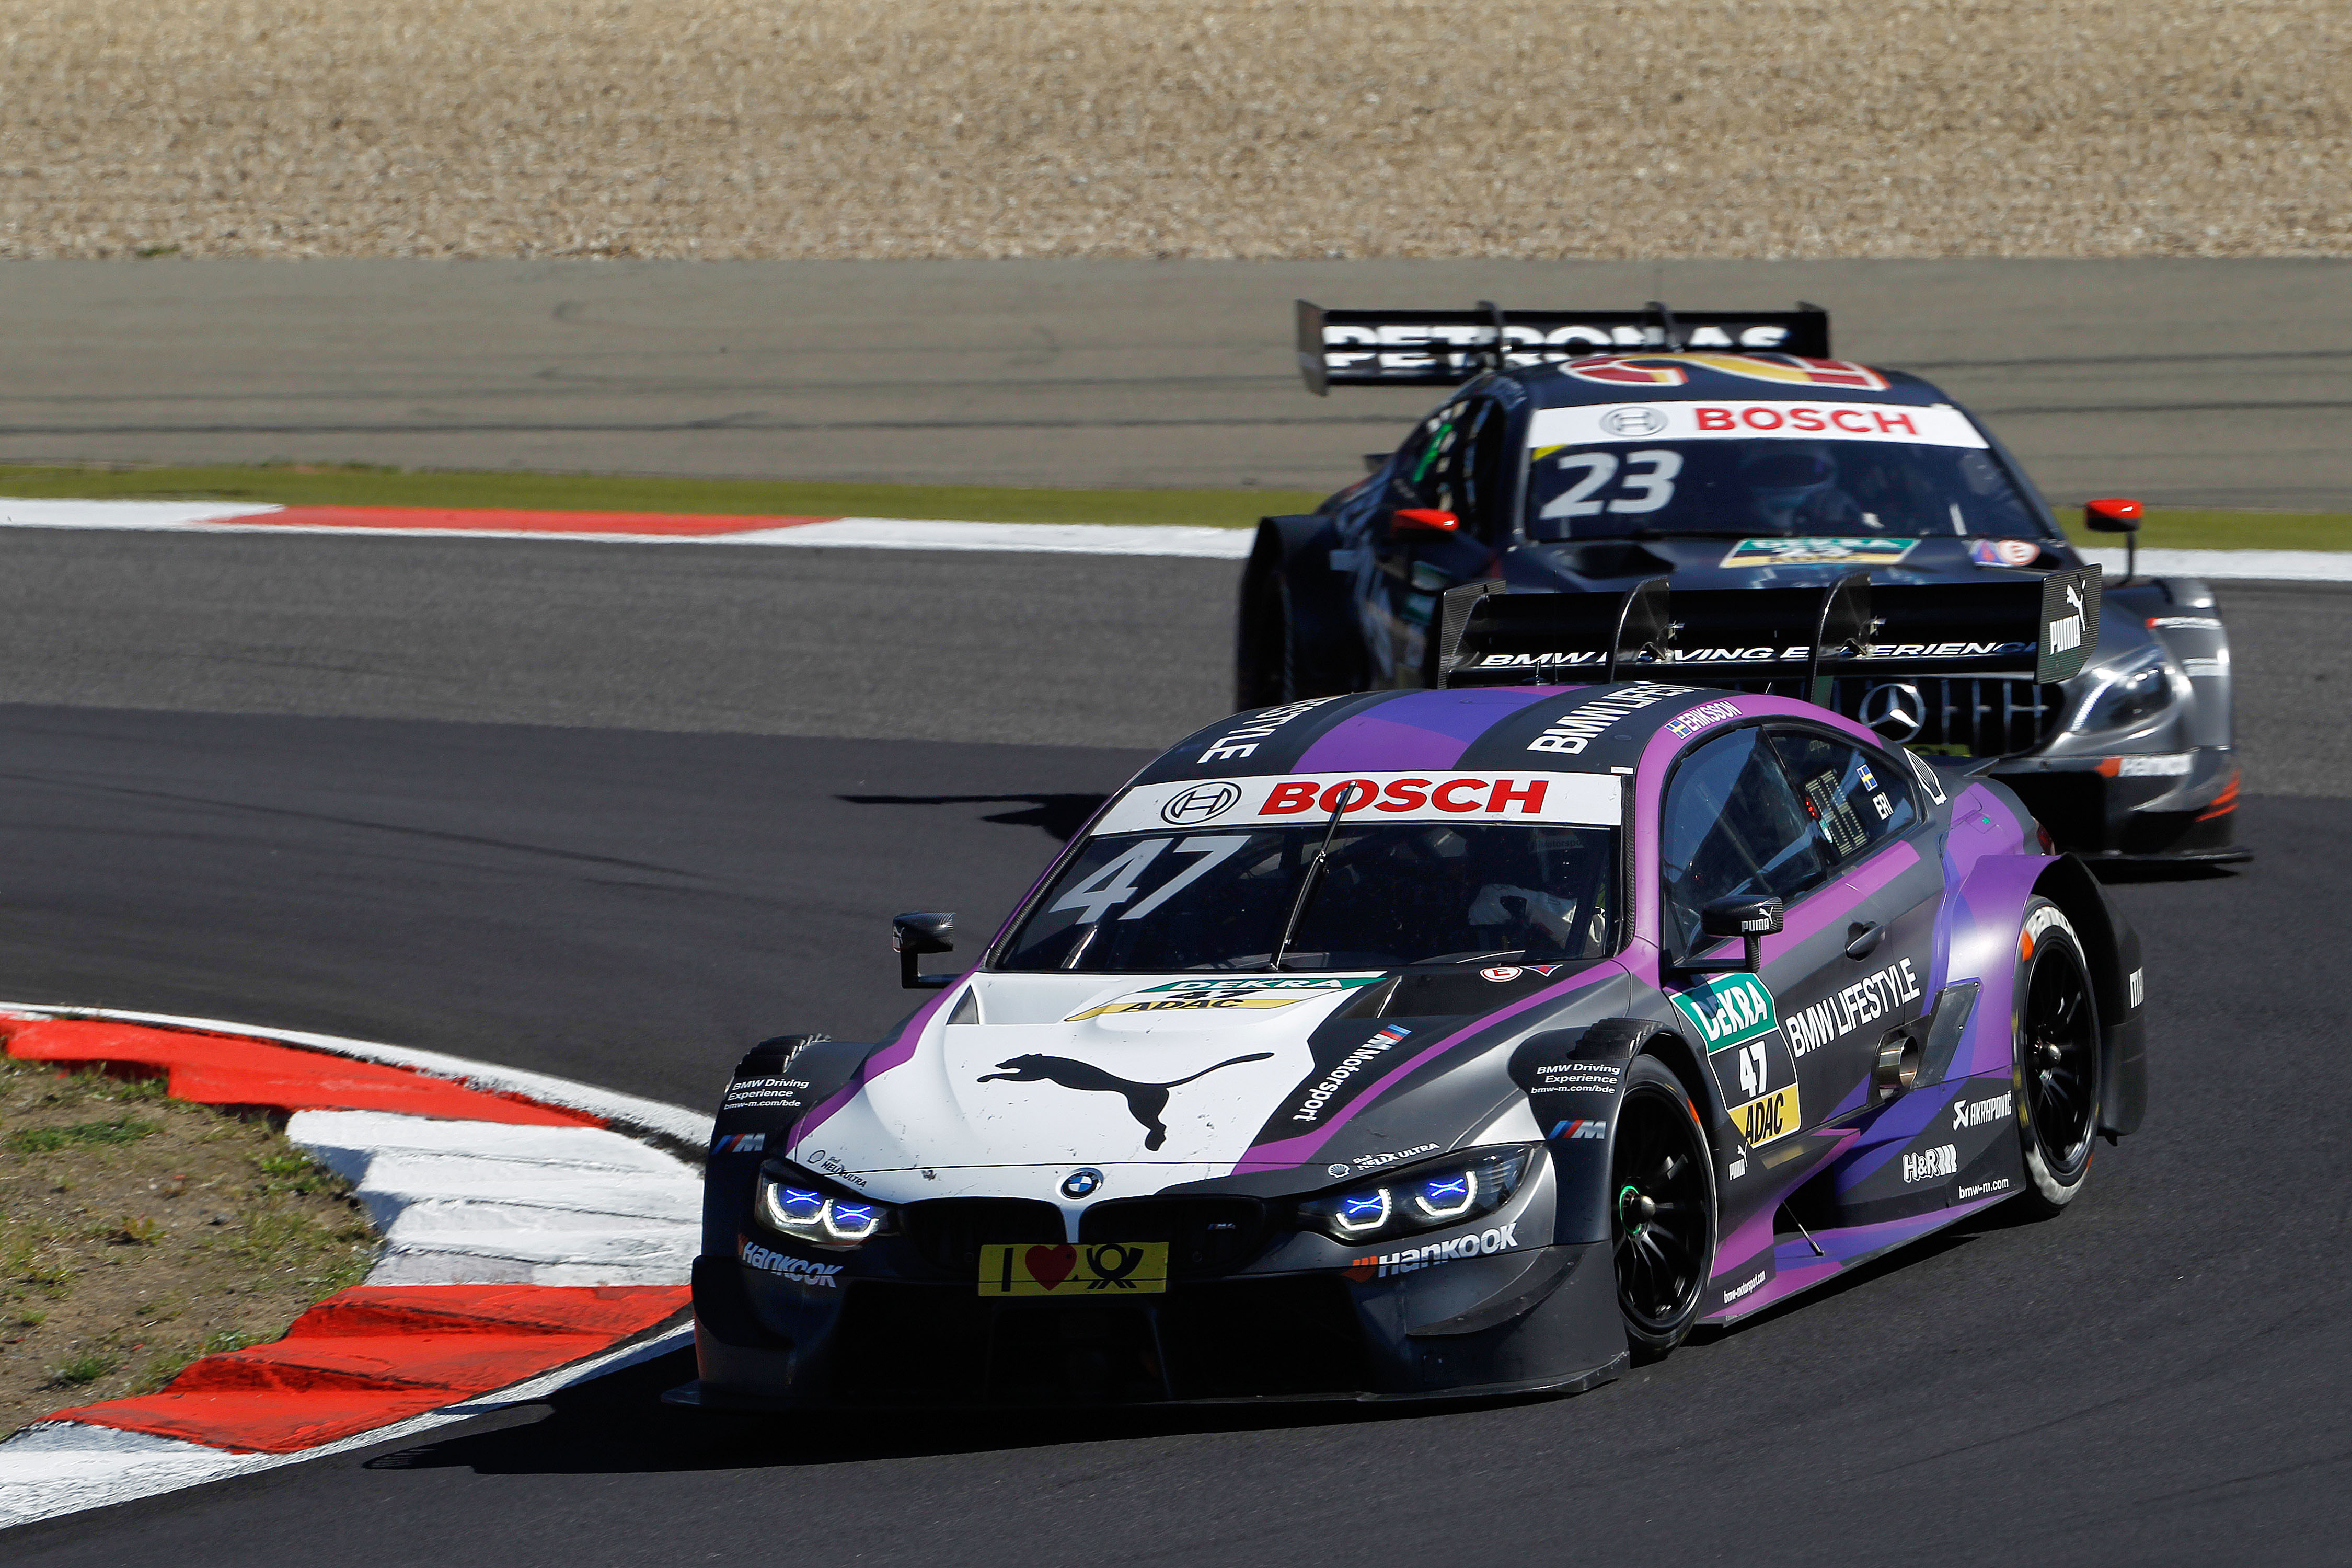 Joel Eriksson follows up maiden win with strong Nürburgring performance